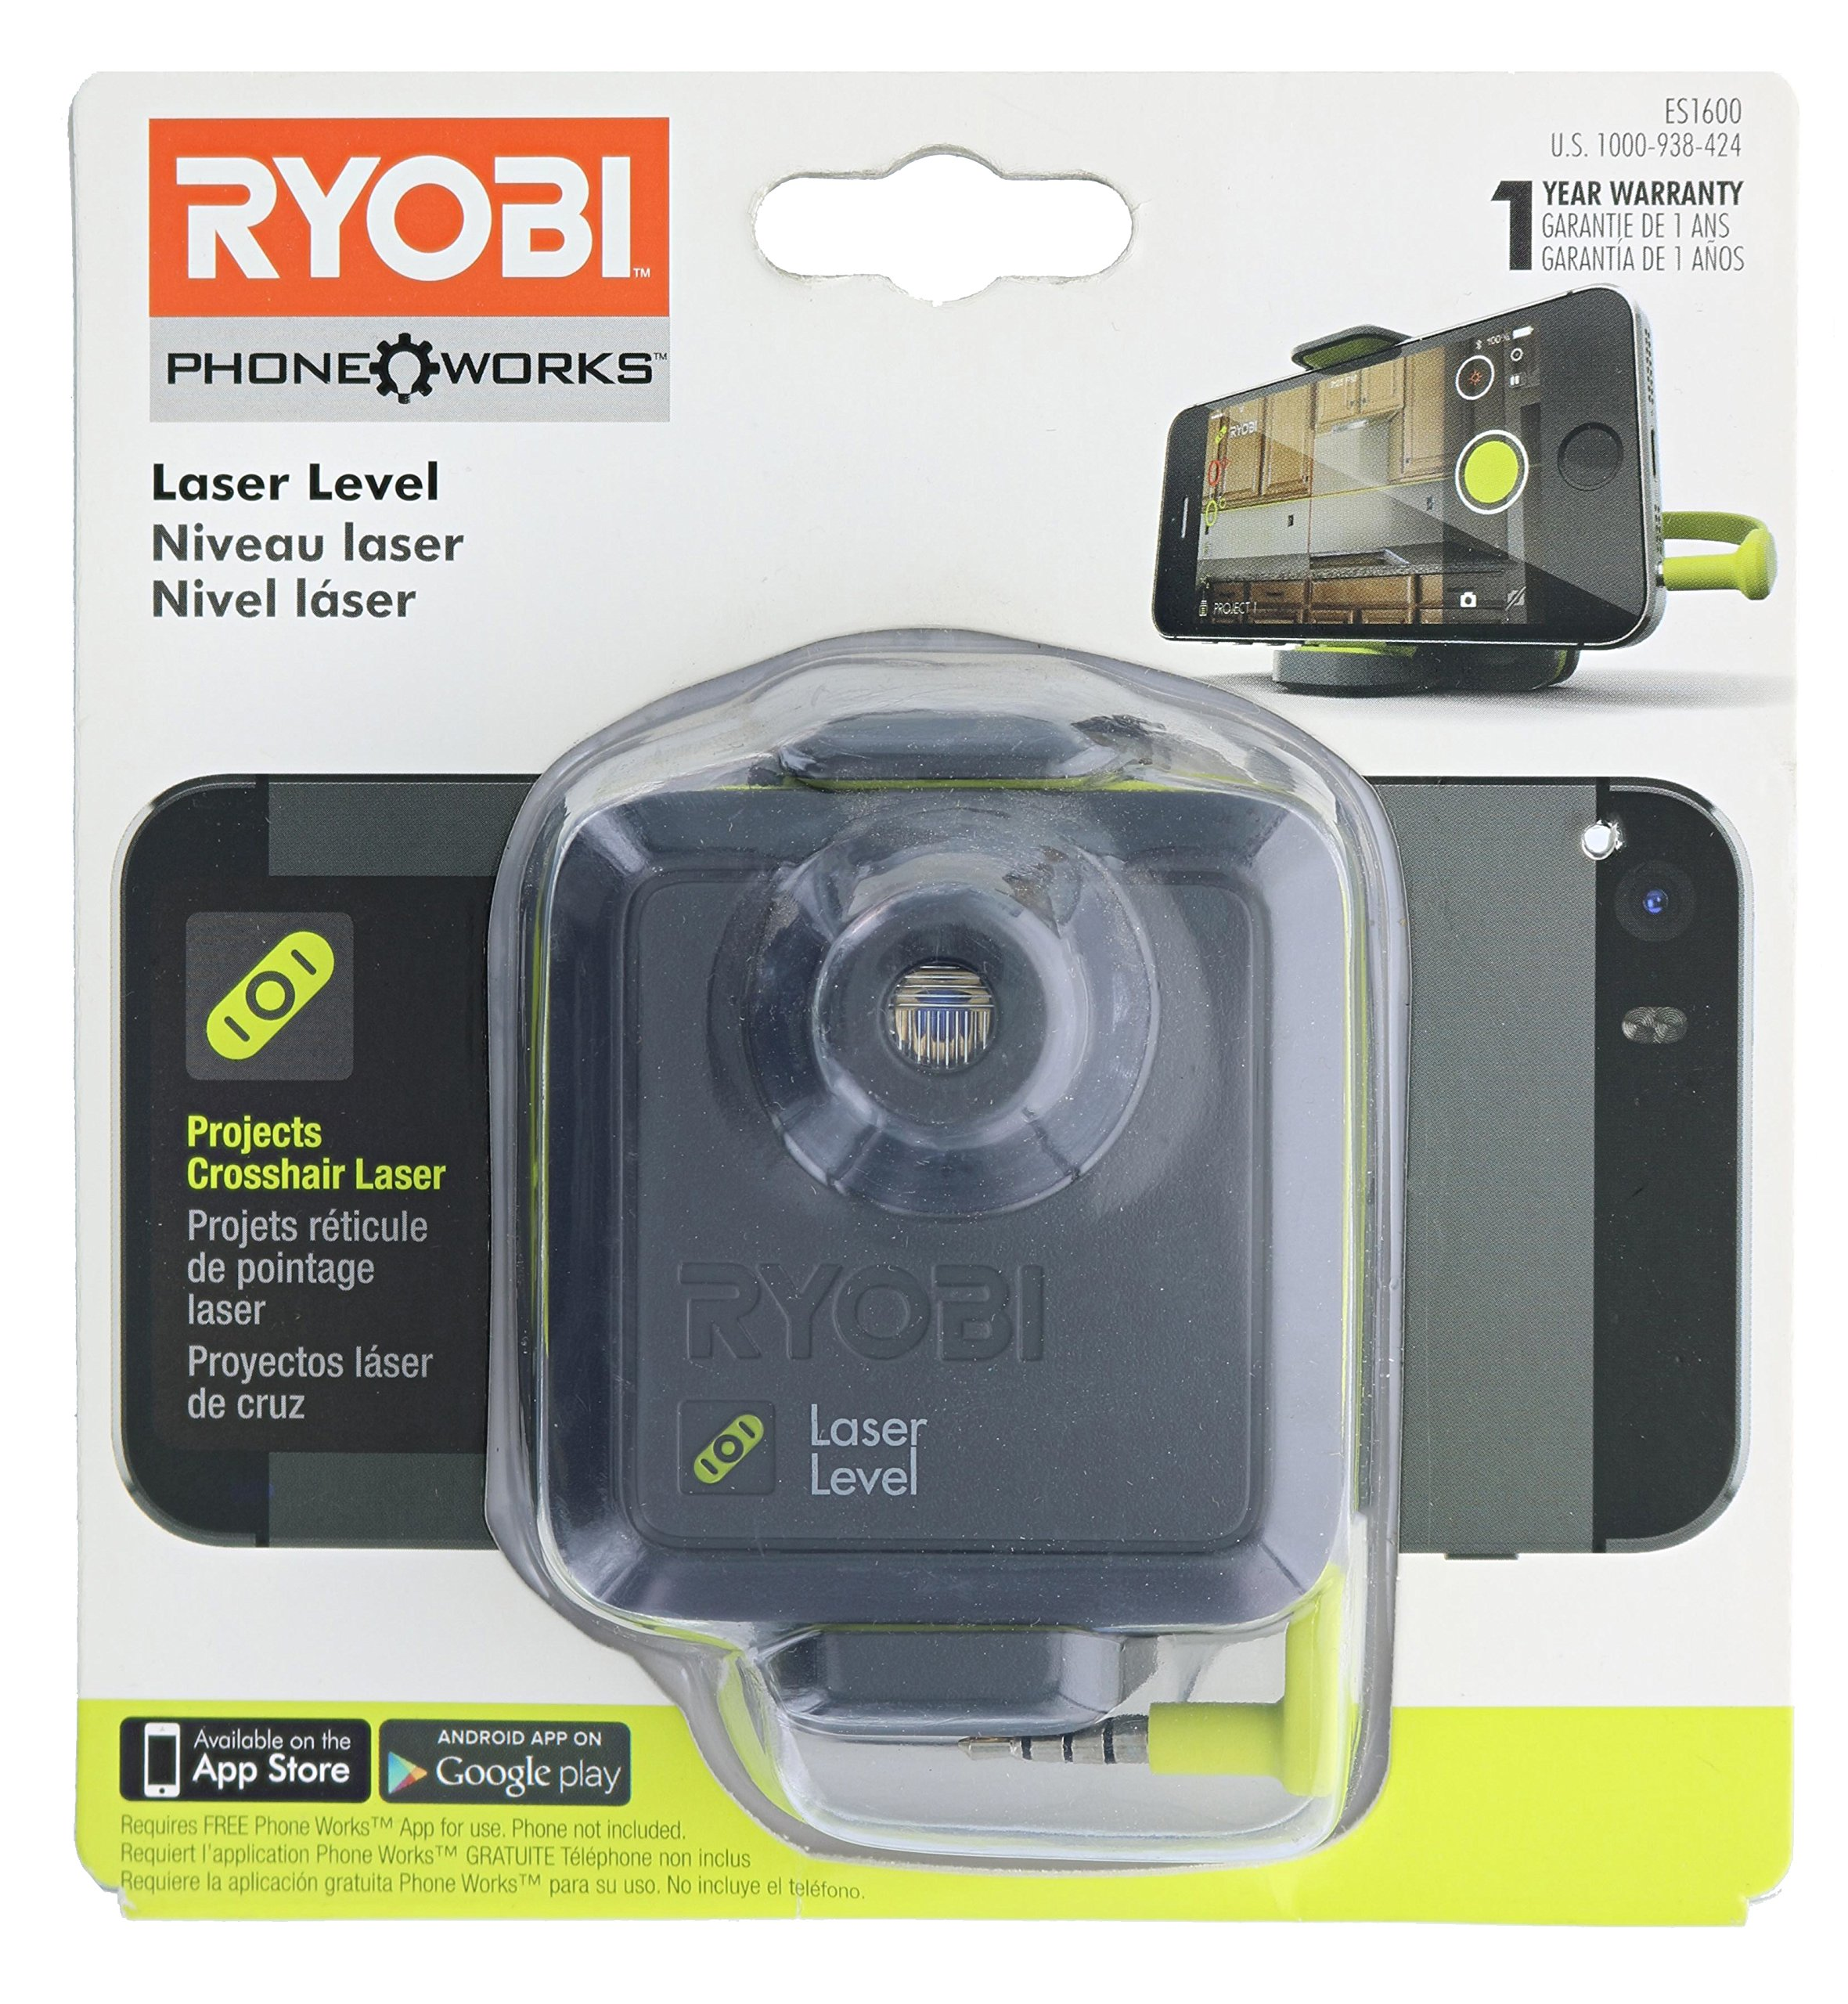 Ryobi ES1600 Phone Works Crosshair Laser Level with App Download and Tripod Clip (Tripod and Cell Phone Not Included)